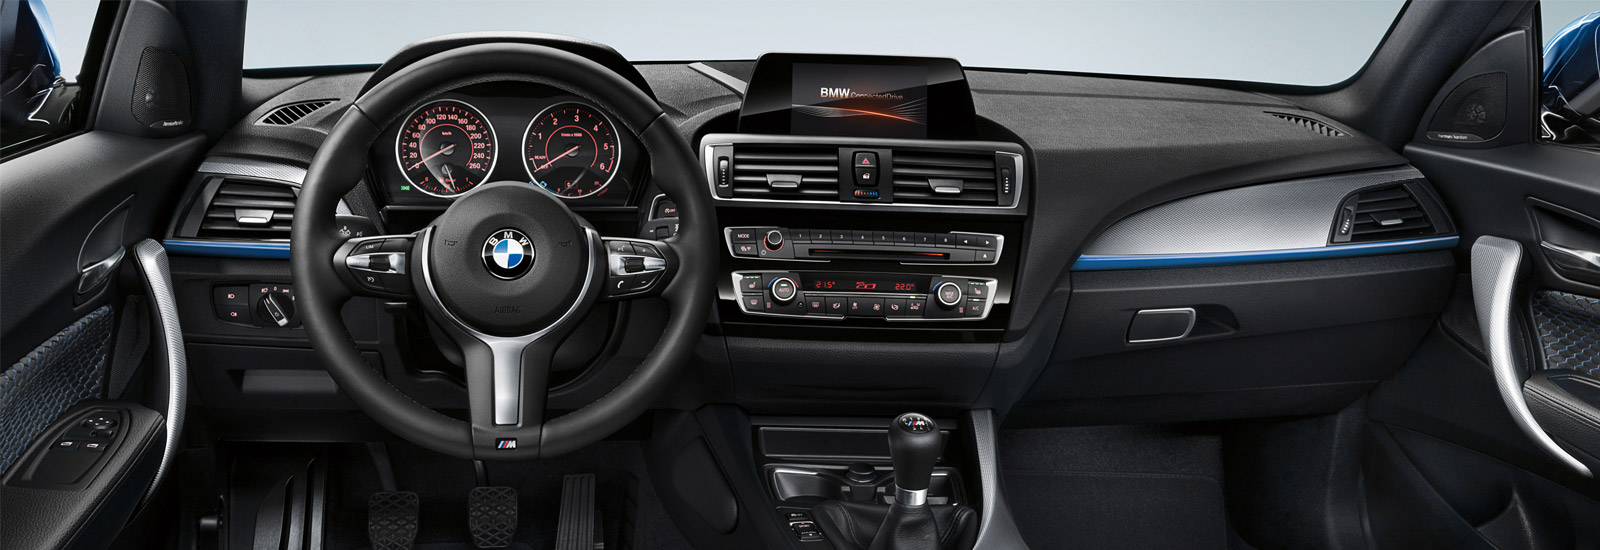 2018 bmw 1 series interior.  series the new 1 series will feature a more modern interior than the old caru0027s  shown here inside 2018 bmw series